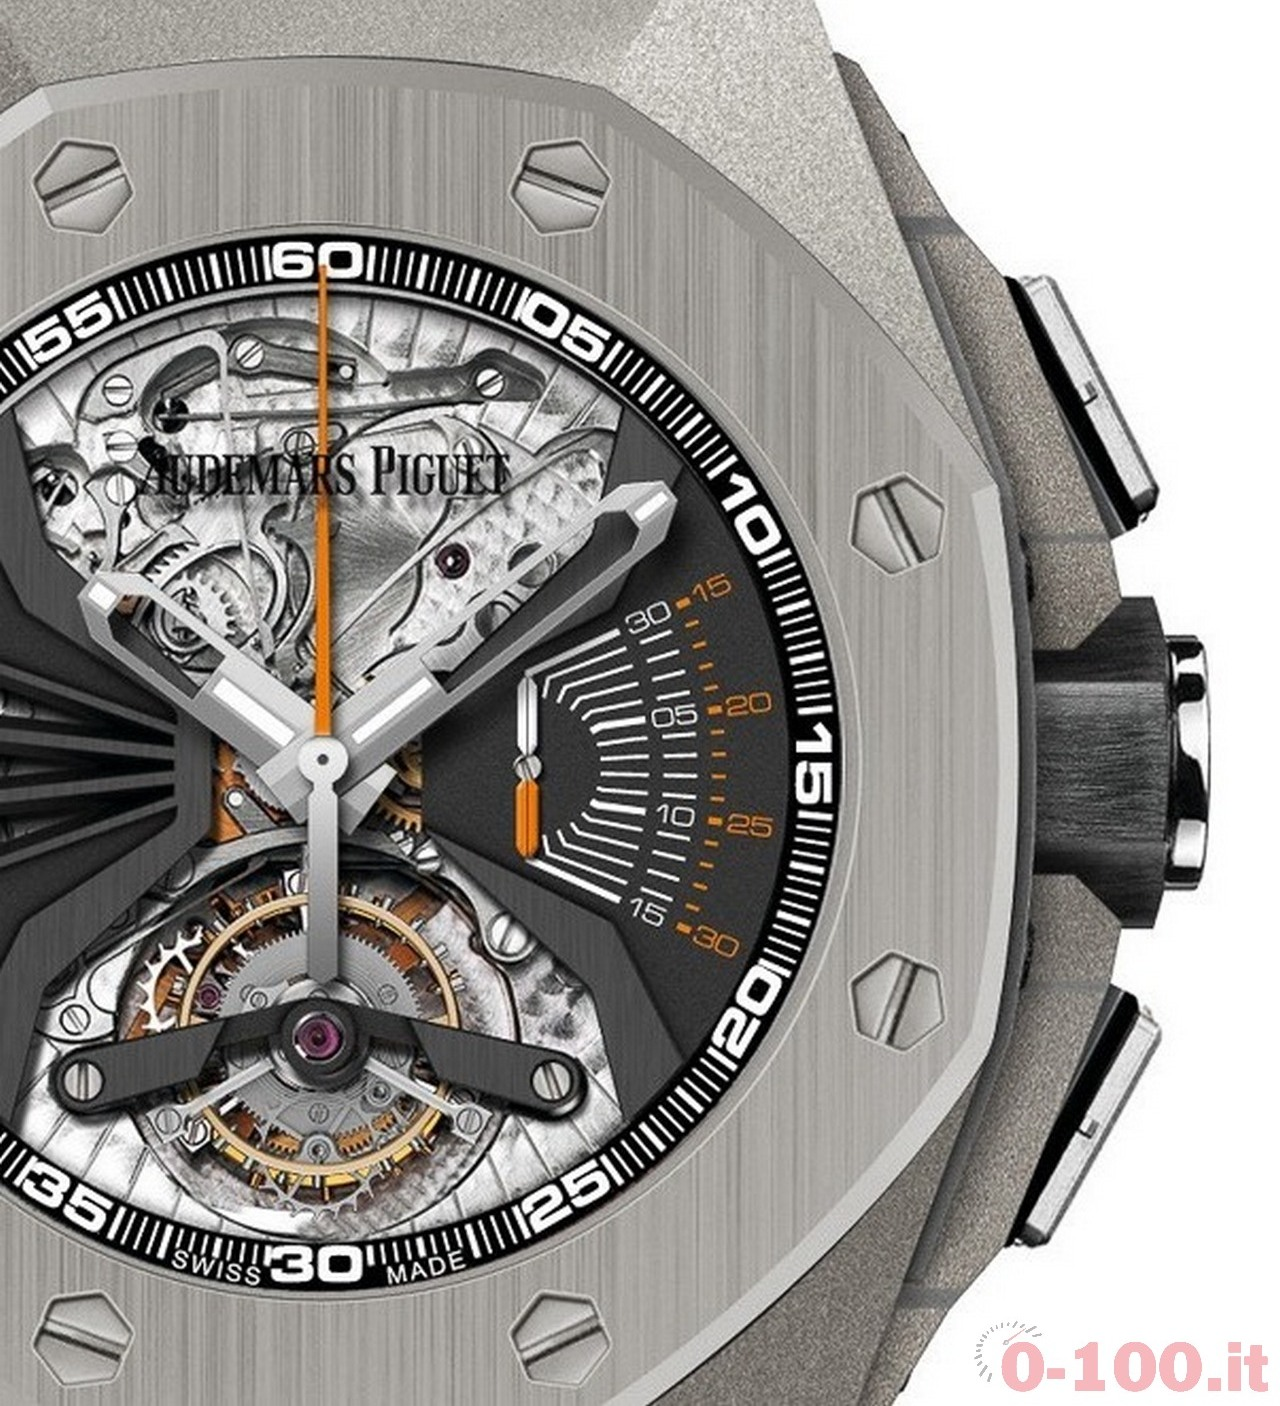 anteprima-sihh-2015-audemars-piguet-royal-oak-concept-acoustic-research_0-100_2